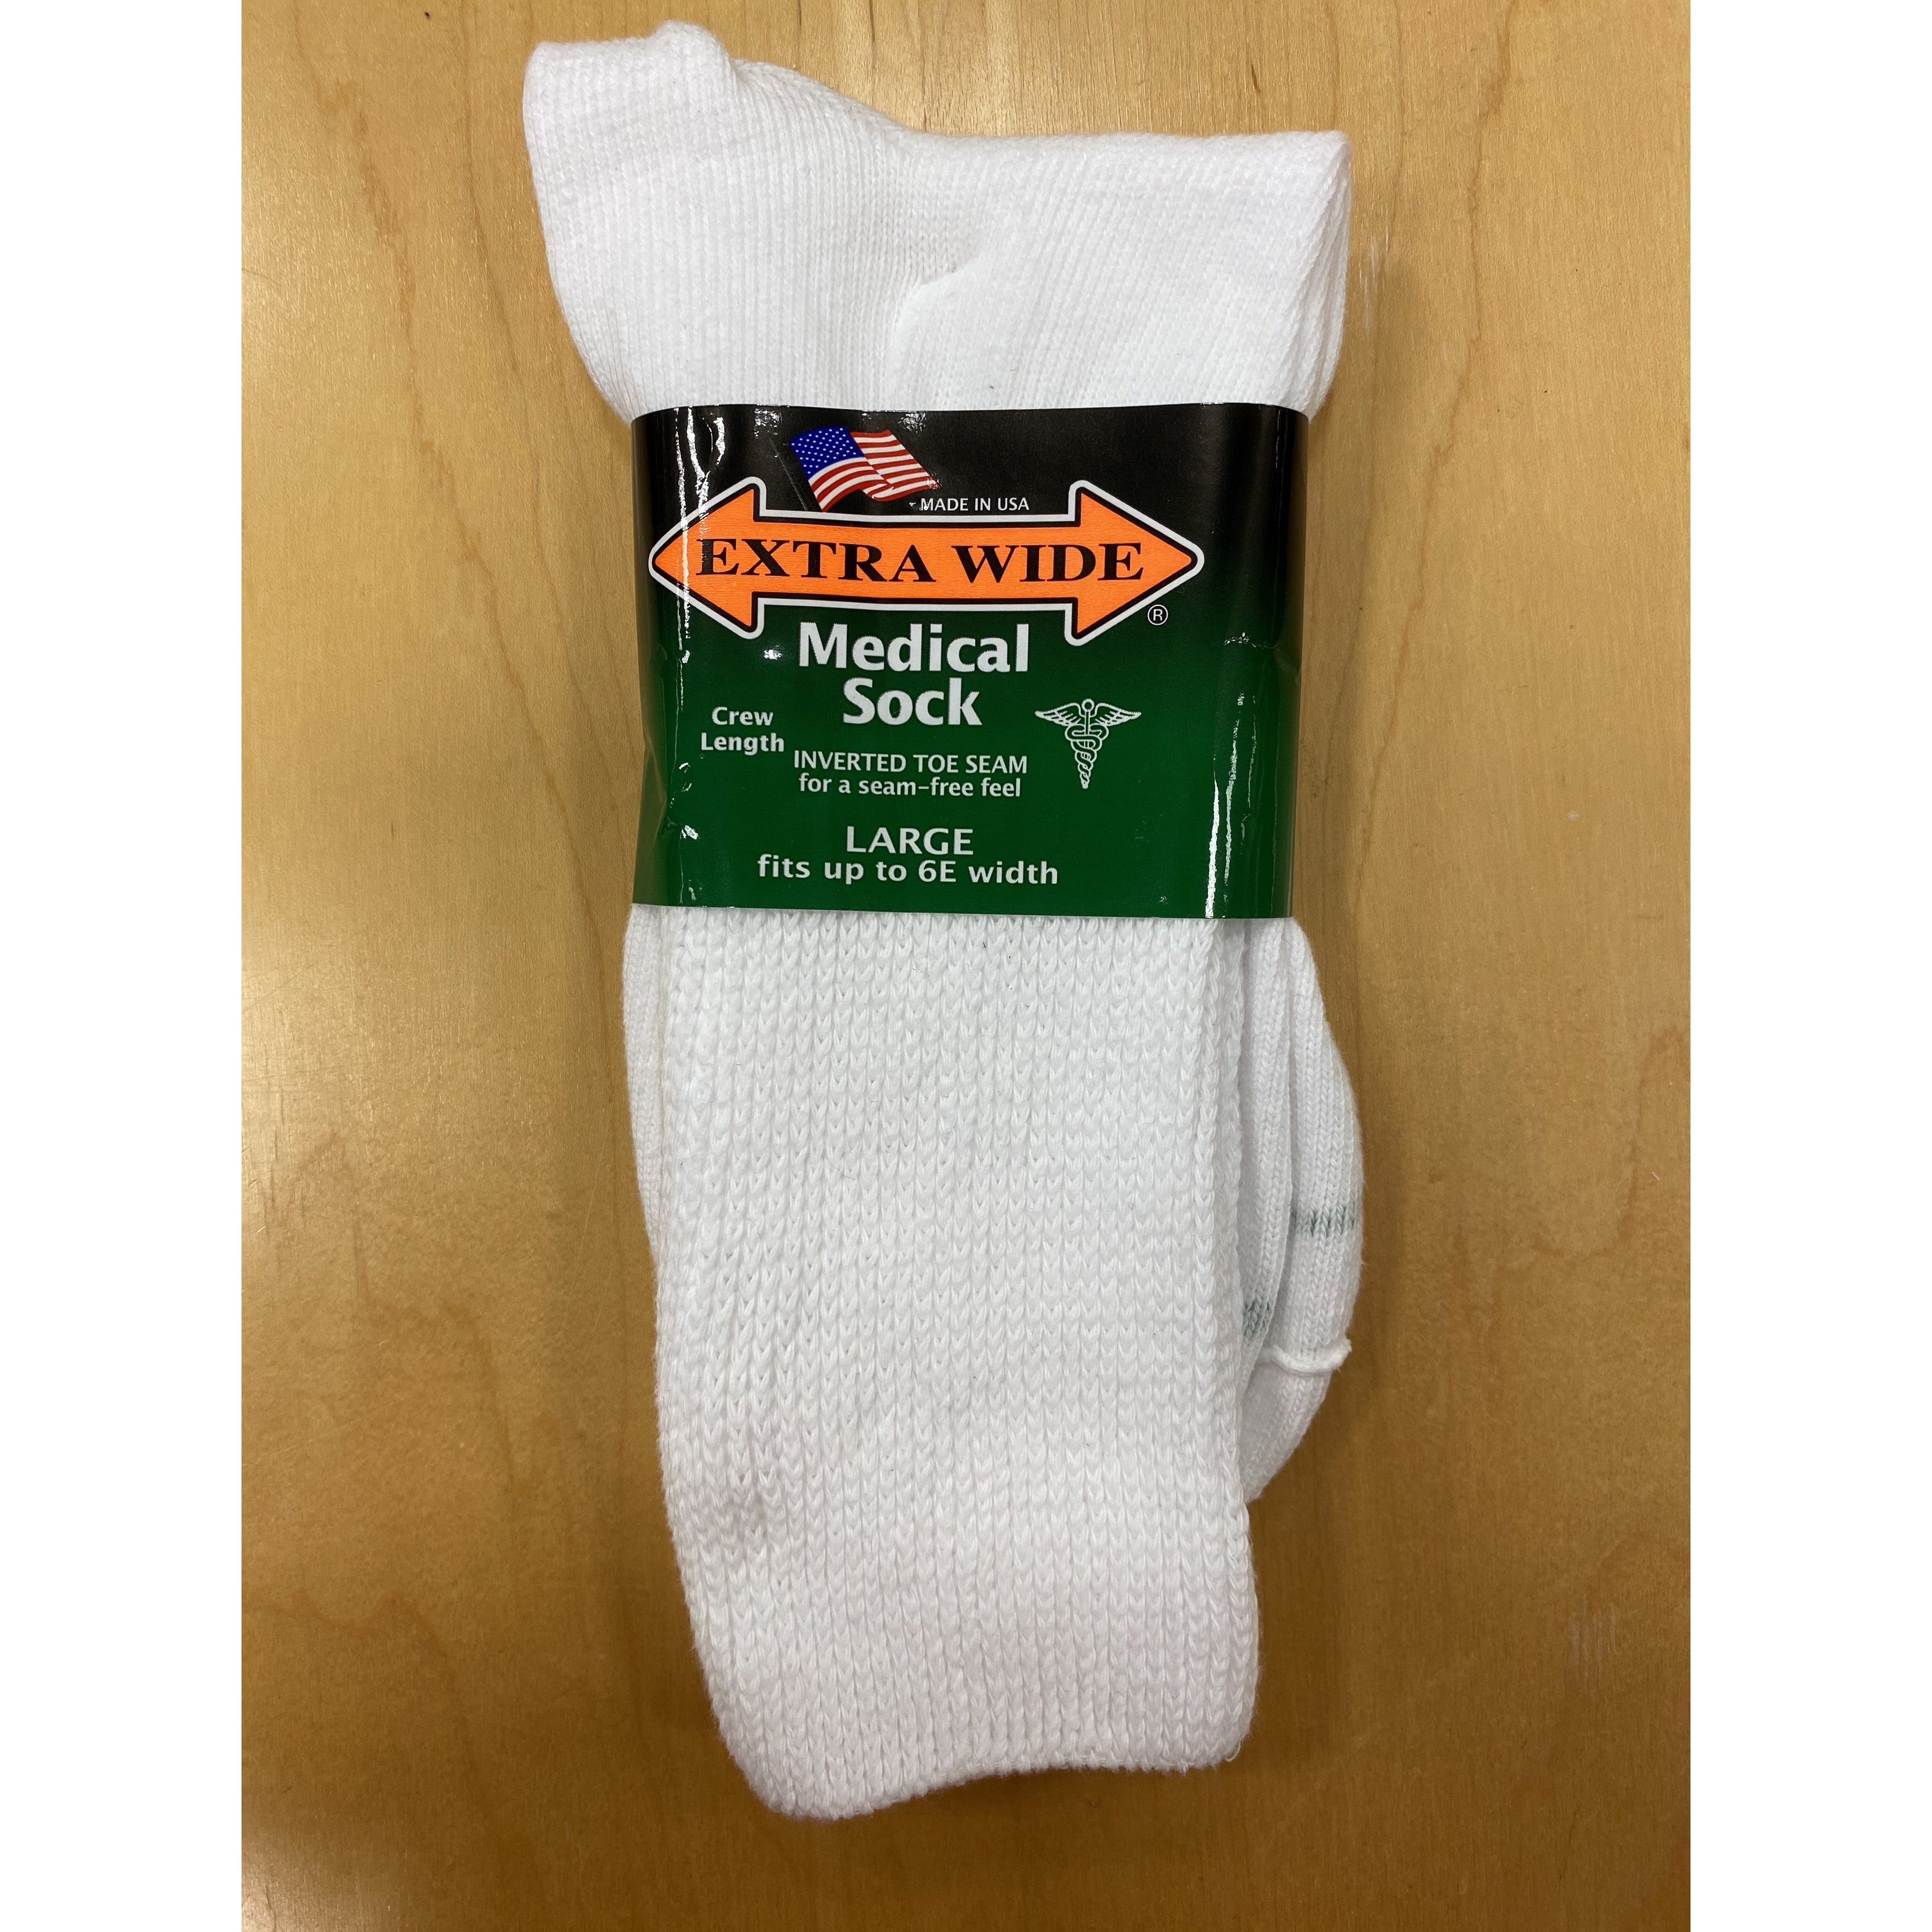 Inverted toe seam, non-binding, MEDICAL extra wide quarter top anklet socks. For those with wider feet who are tired of squeezing into tight, uncomfortable socks. These comfort fit, extra wide anklet socks are great for wide feet, swollen legs and people with medical conditions such as edema, diabetes and circulatory problems.